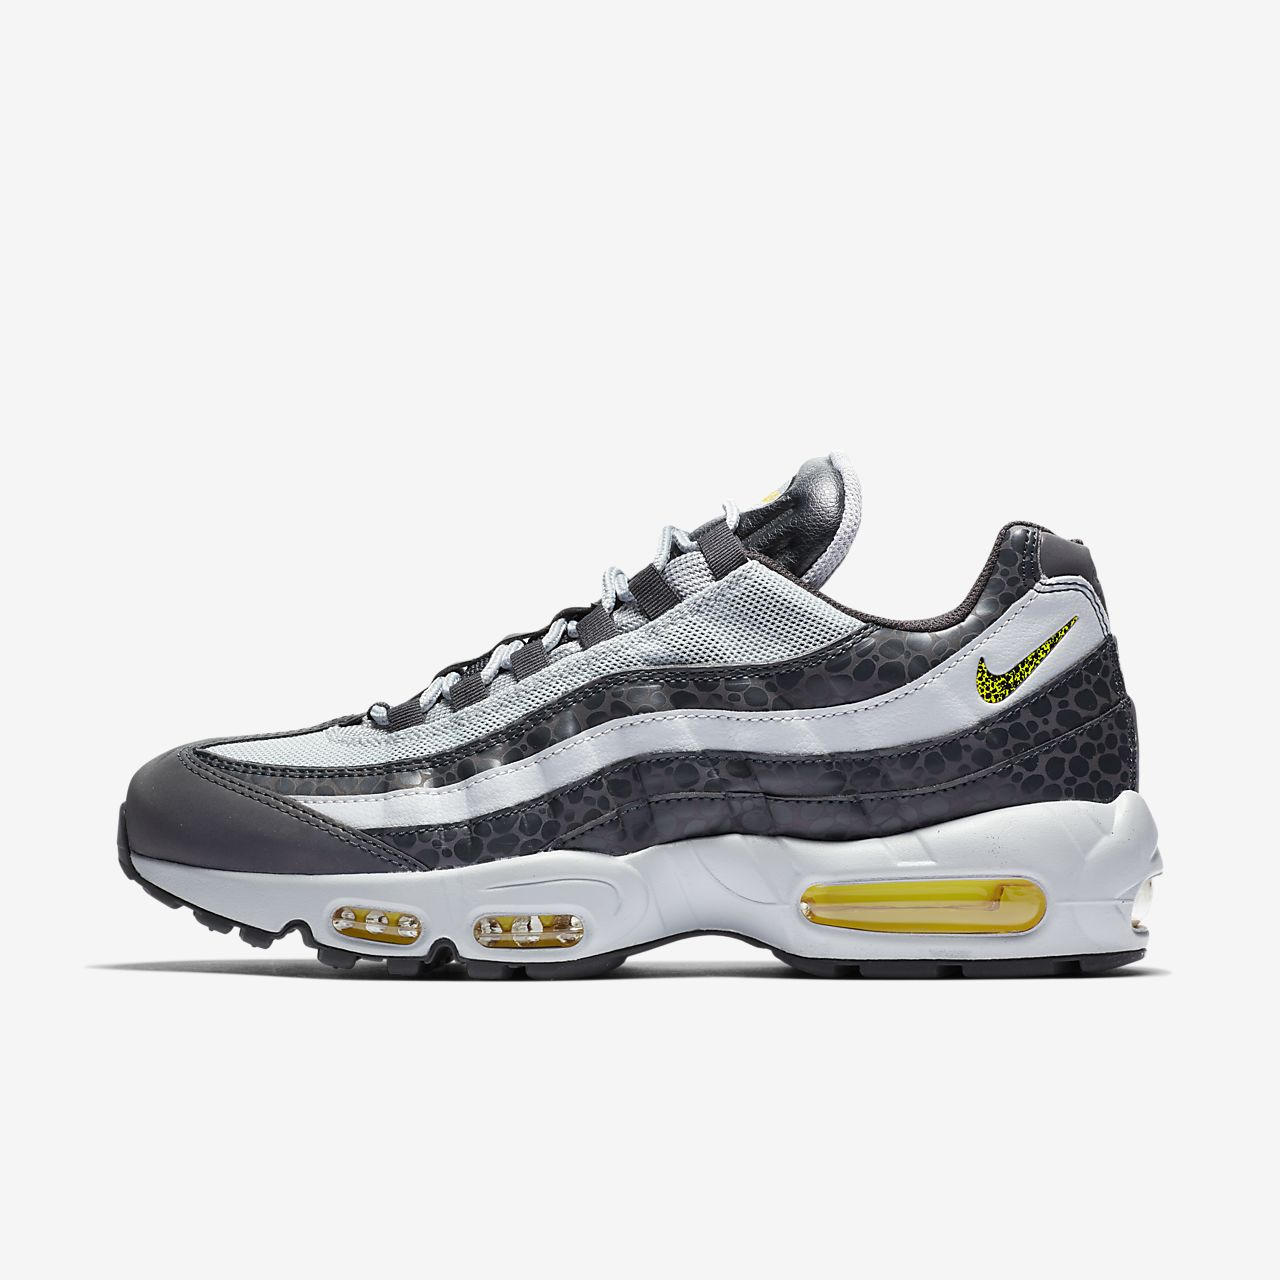 hot sale online 56803 bd83c ... Nike Air Max 95 SE Men s Shoe